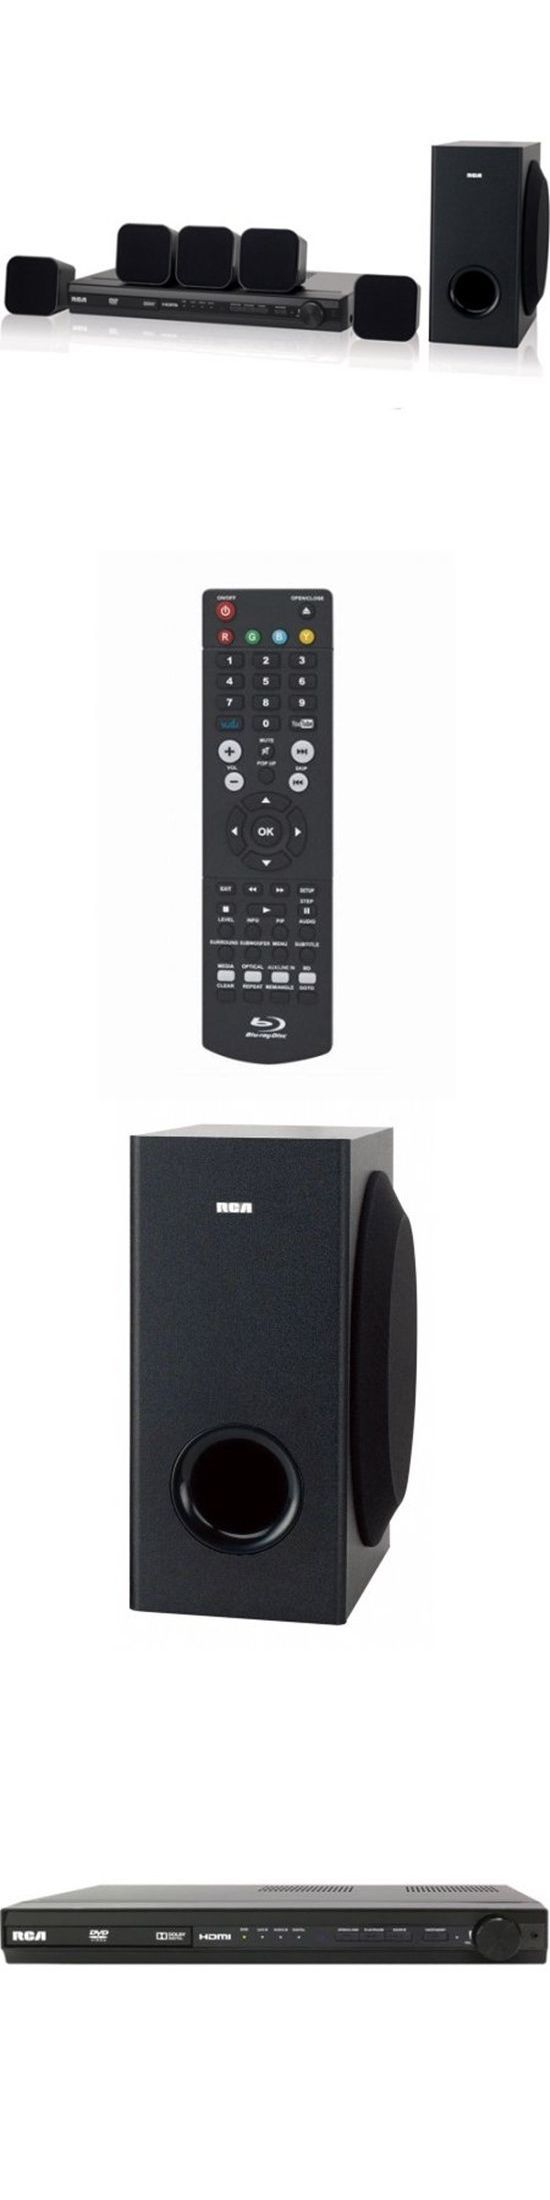 Home Theater Systems: Rca 200W Home Theater System With Dvd Surround Sound Receiver 5 Speakers Rc New BUY IT NOW ONLY: $103.99